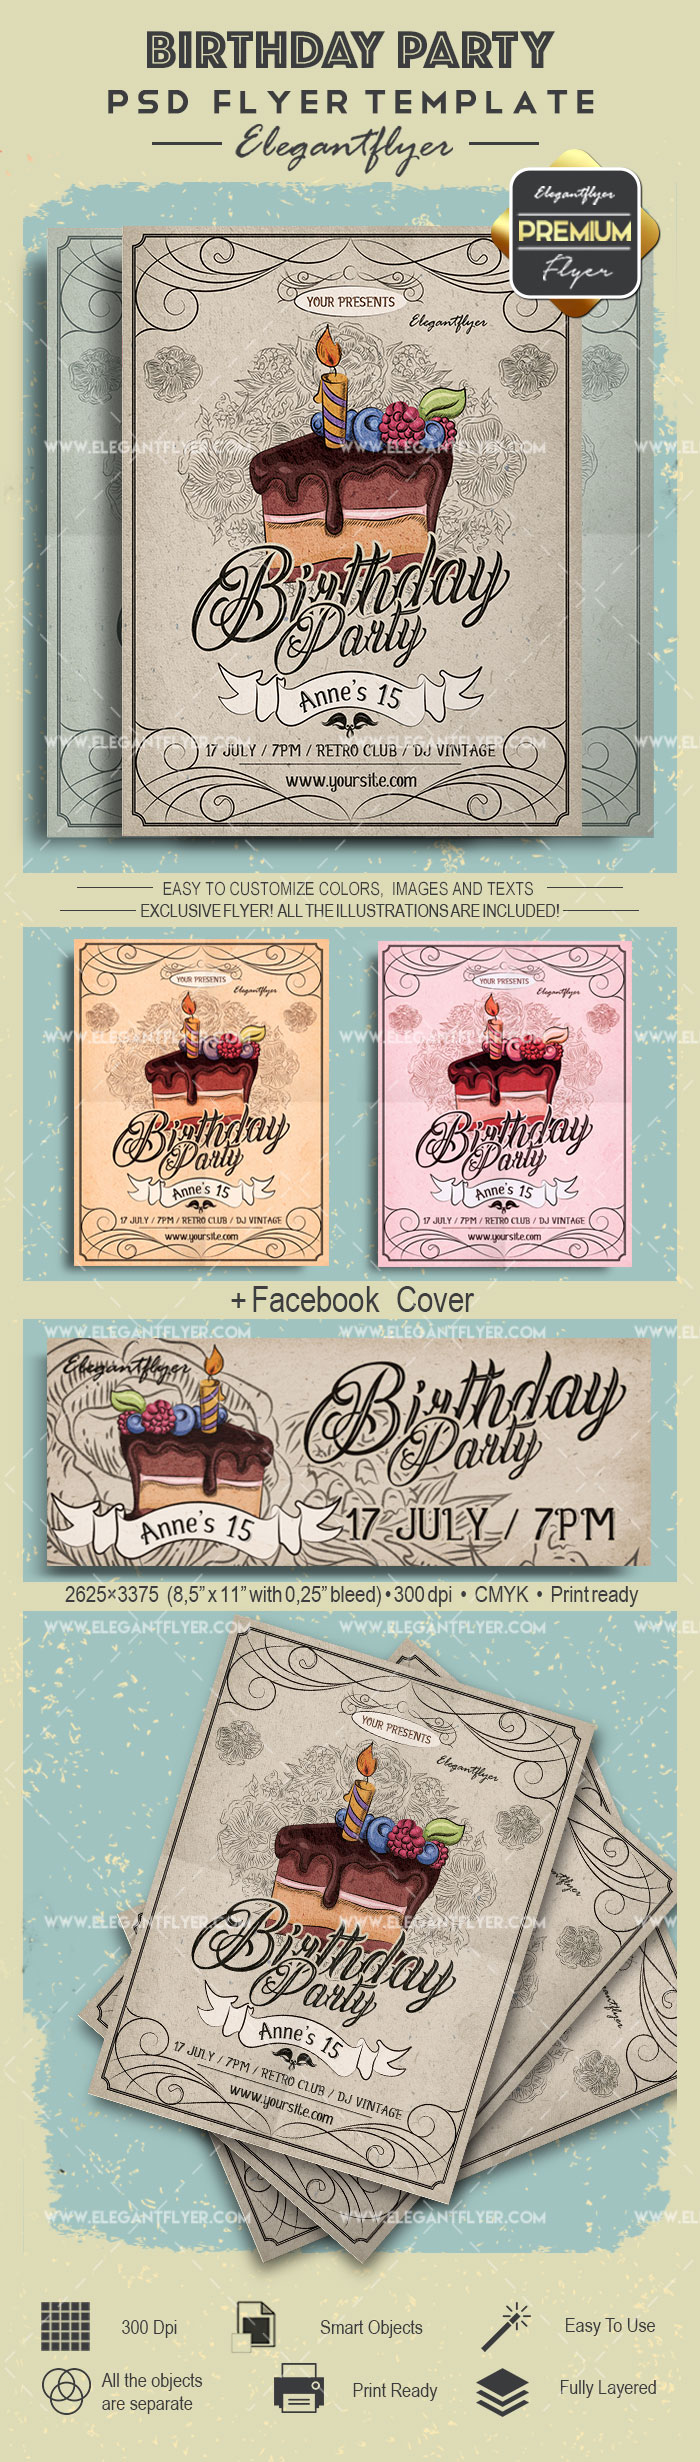 Flyer for Cake Baking Birthday Party